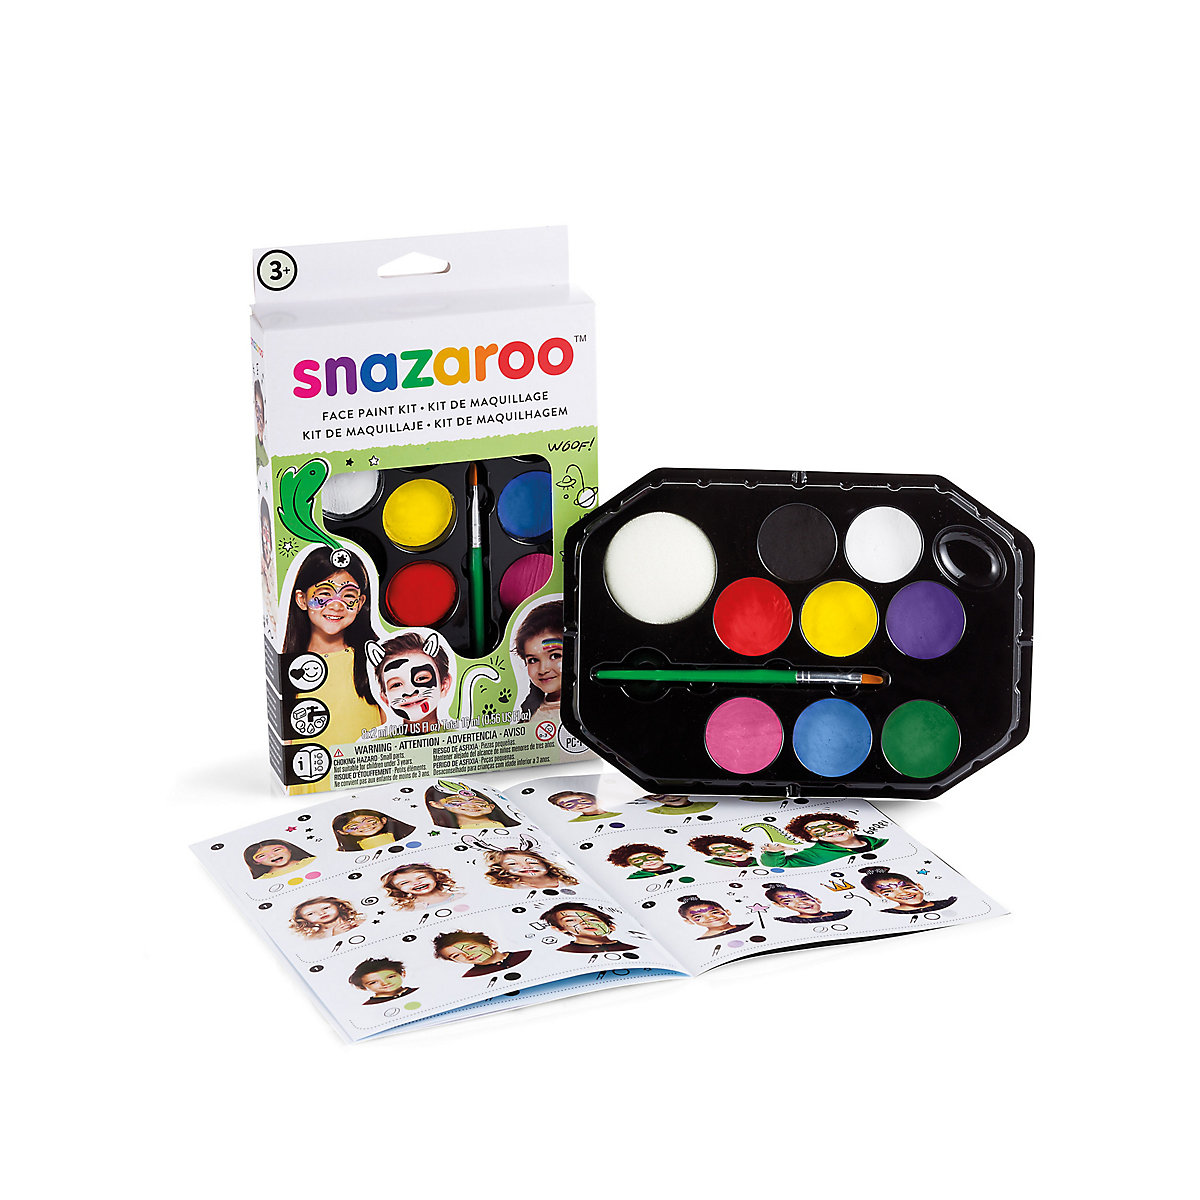 New ELC Boys and Girls Snazaroo Bright Face Painting Kit Toy From 3 years - Painting Gifts